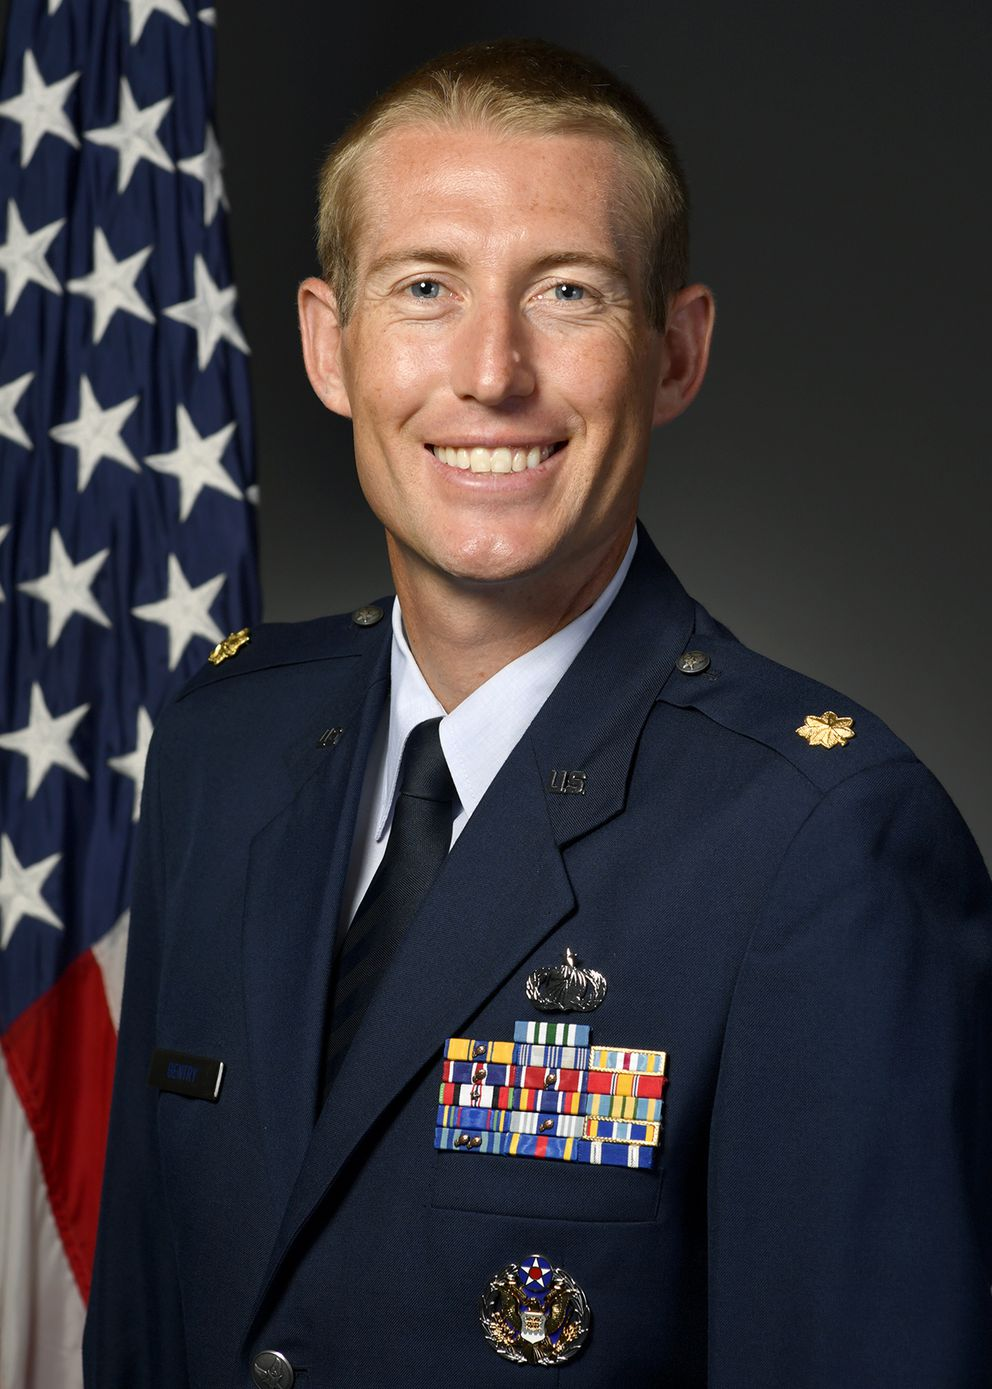 Maj. Michael Gentry, 354th Contracting Squadron commander, was fatally struck by a vehicle Saturday, Aug. 1, 2020, while he was cycling northeast of Fairbanks. (Photo courtesy of Eielson Air Force Base)